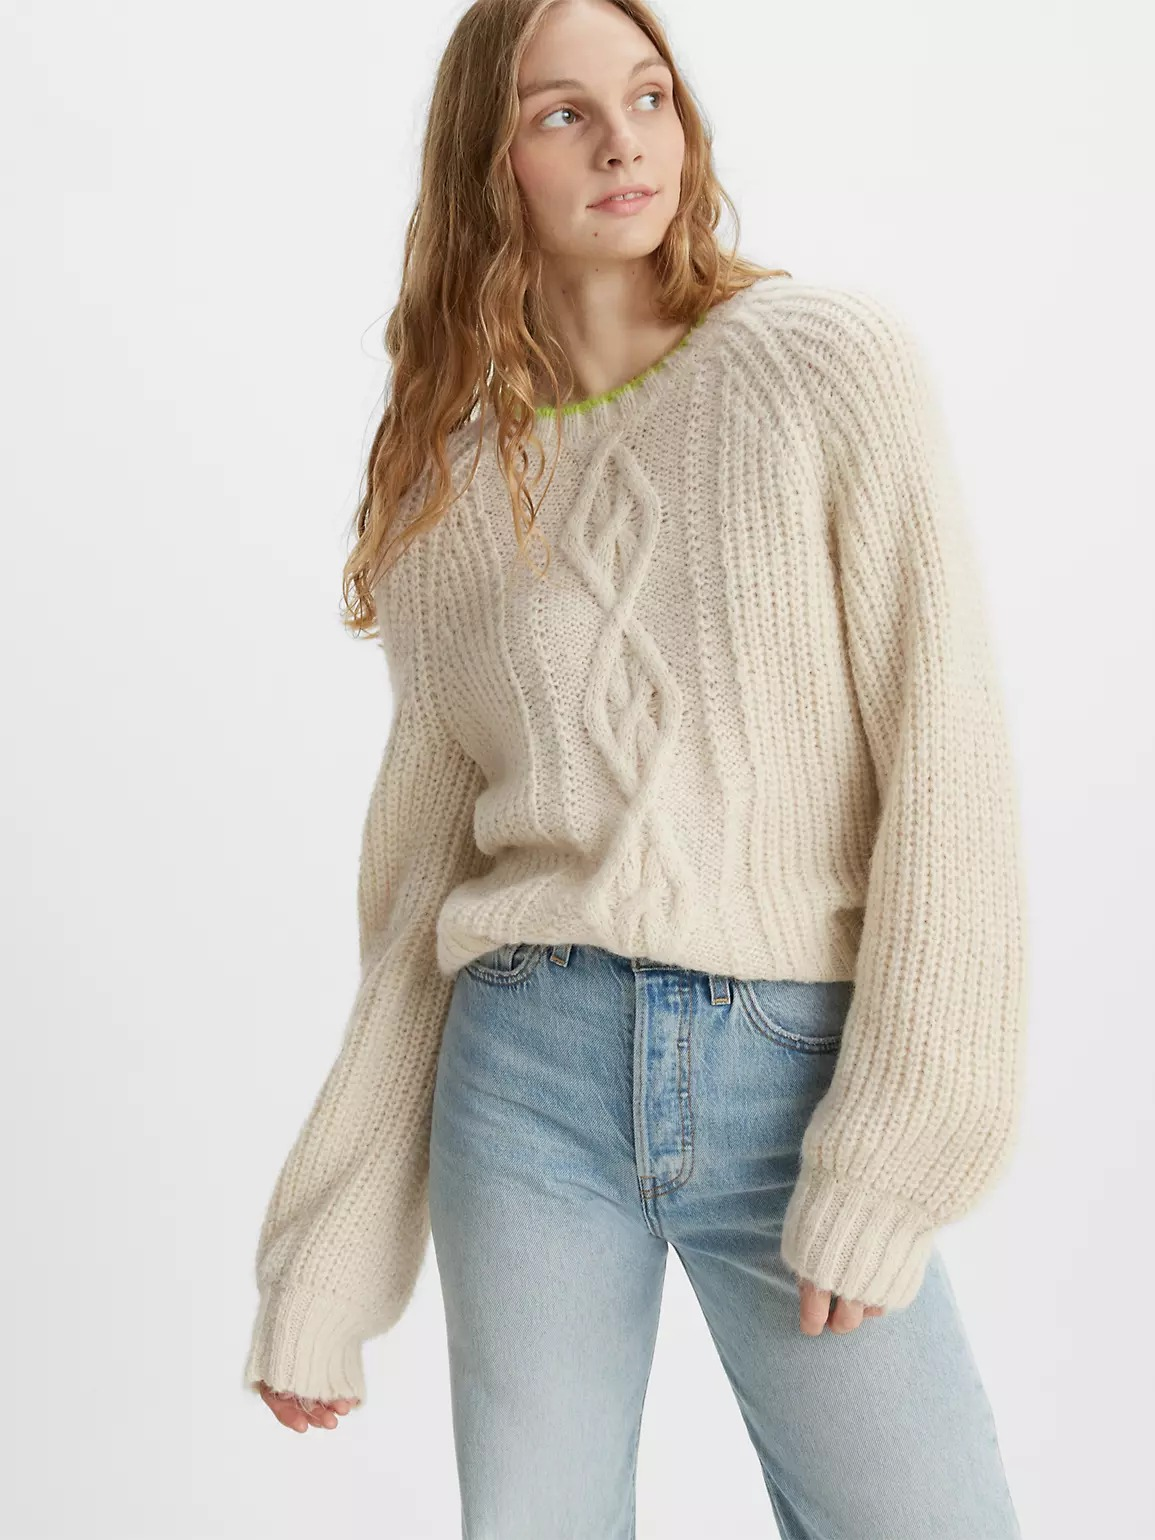 Levis-Ava-Cable-Sweater-